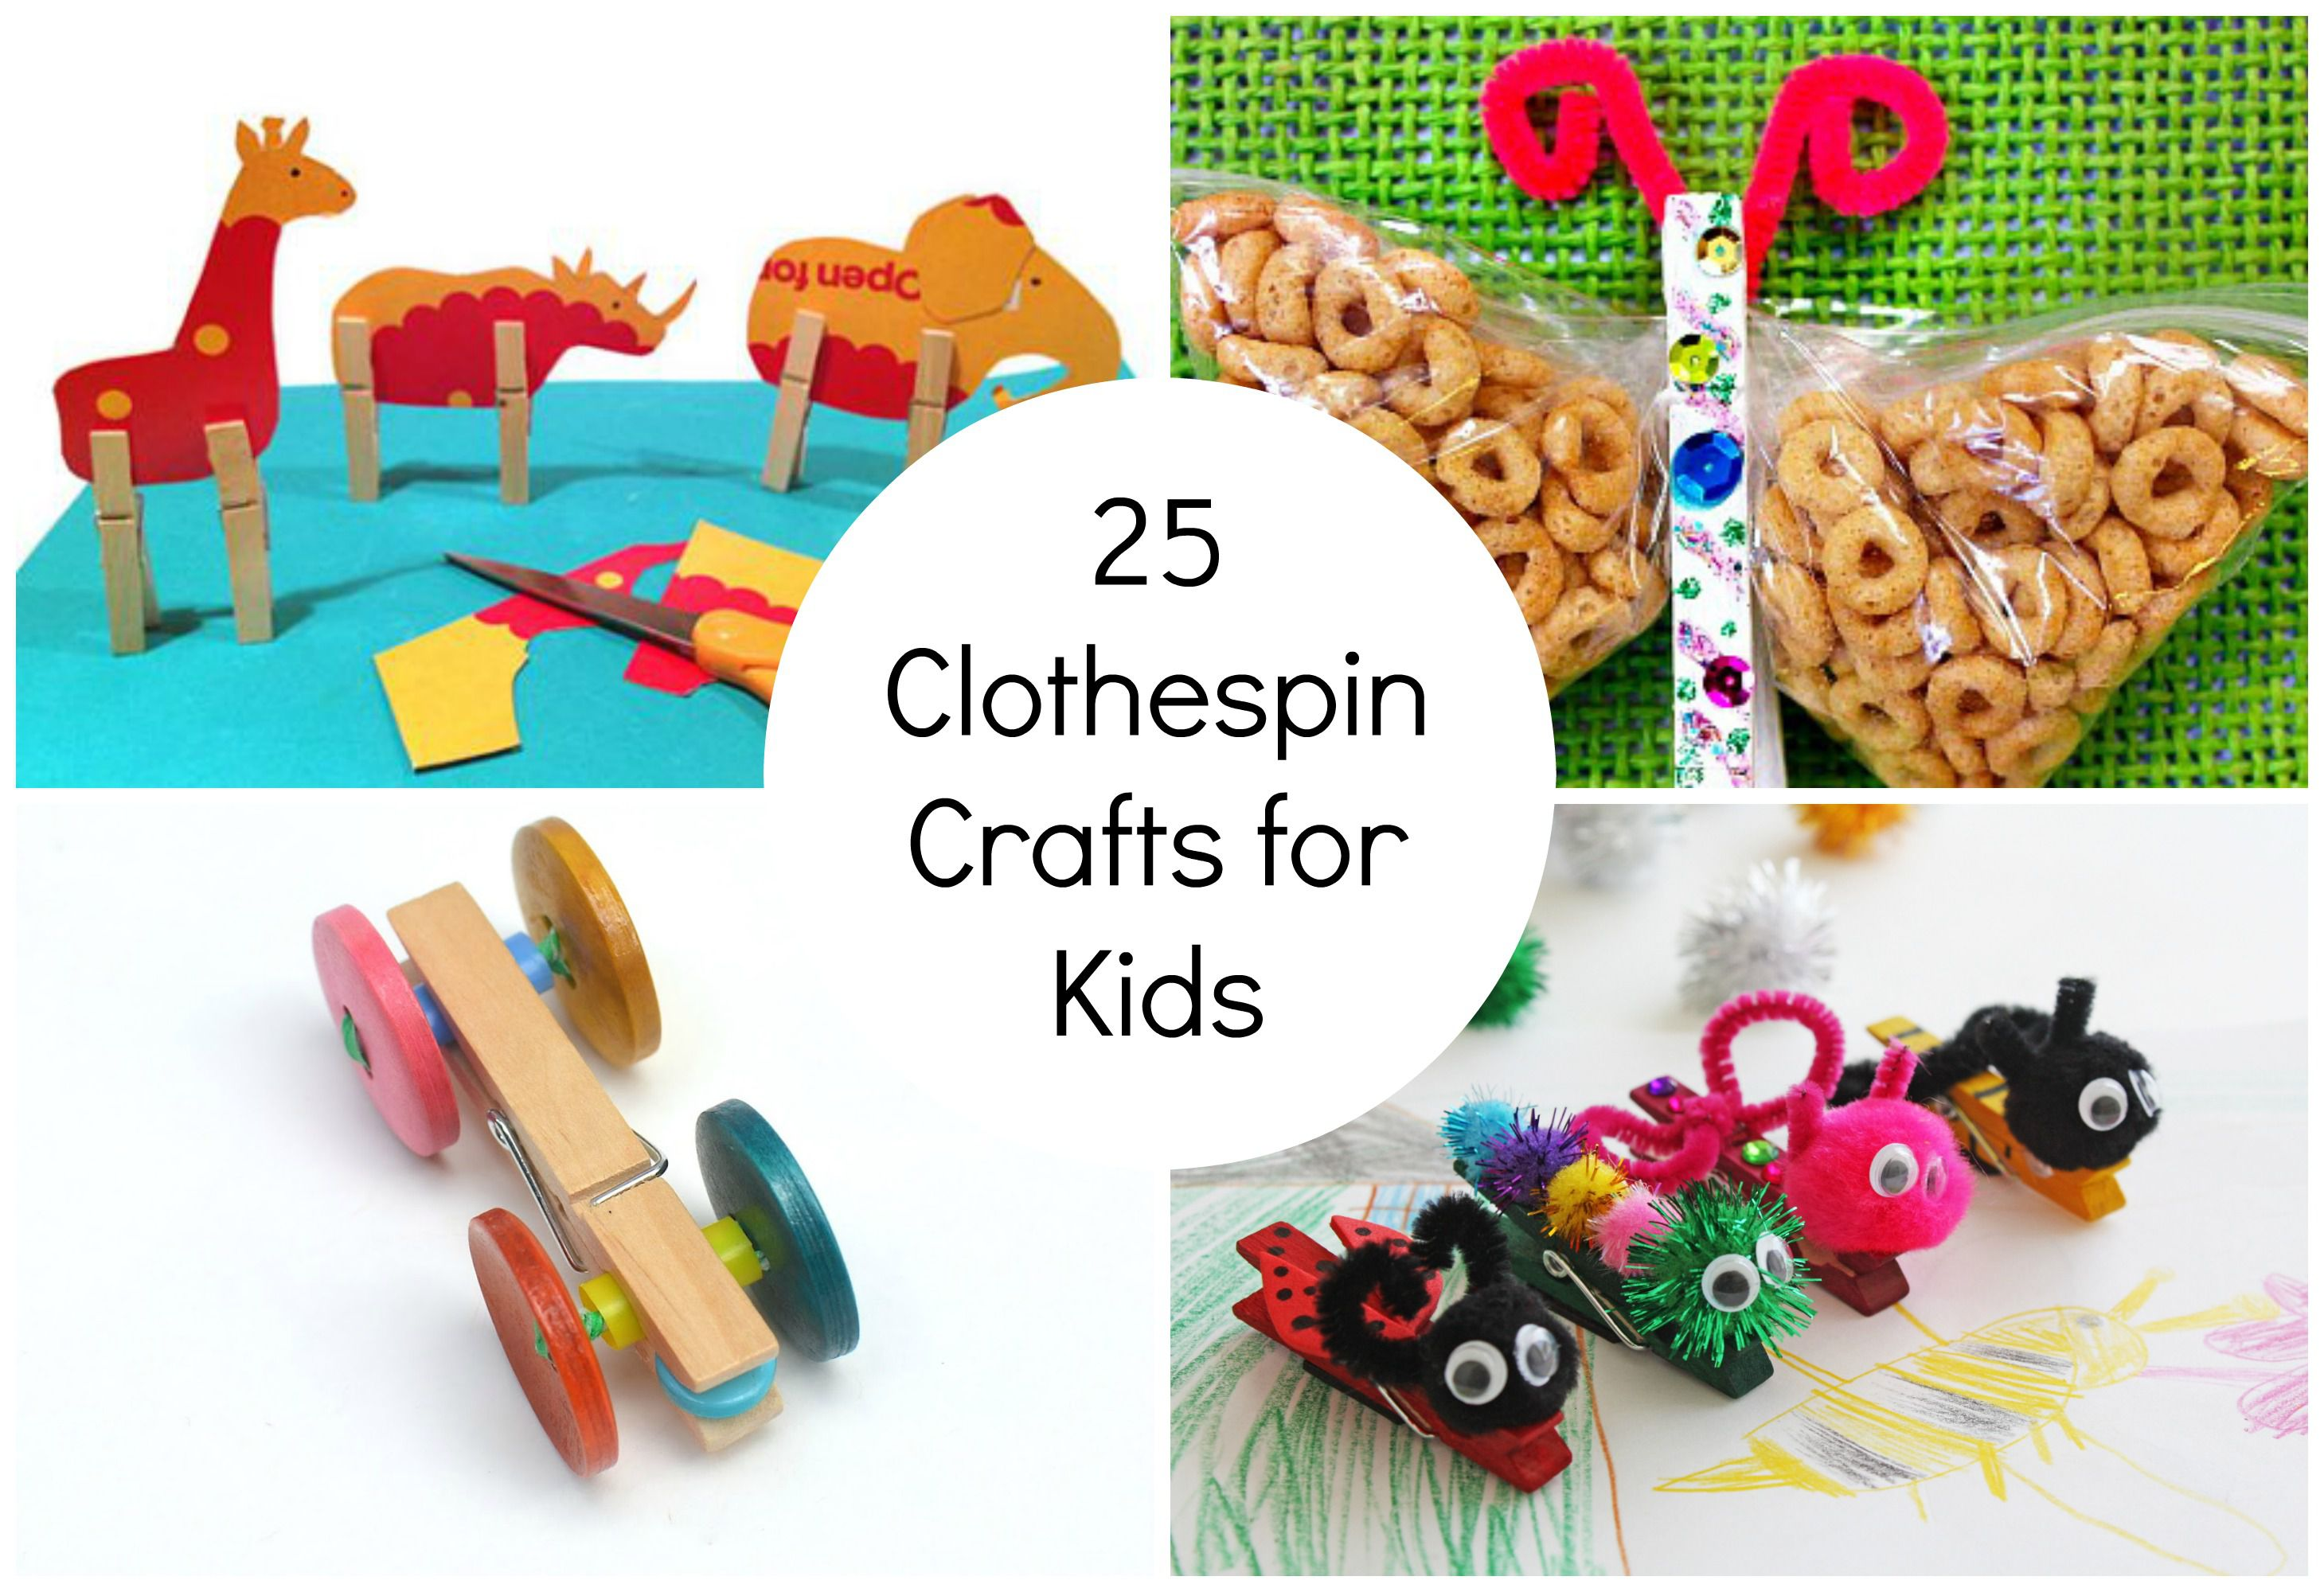 25 clothespin crafts for kids for Close pin crafts